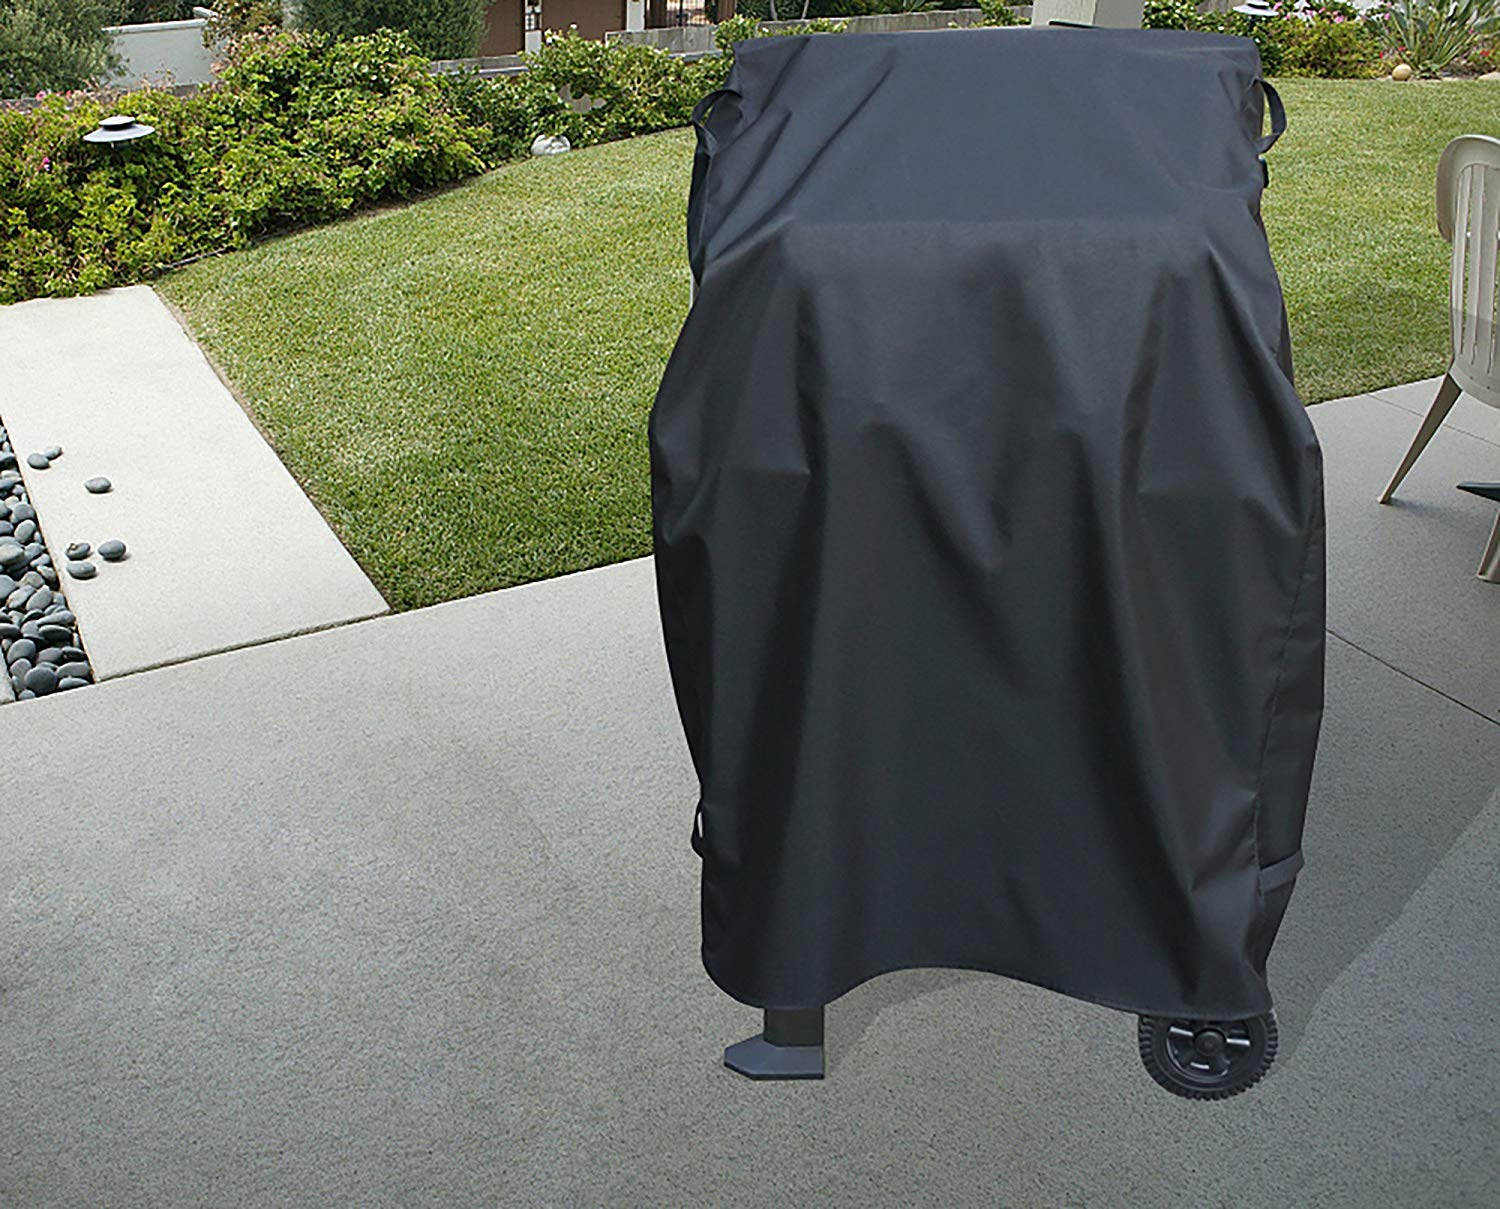 Top 10 Best Grill Covers In 2020 Reviews Buyer S Guide